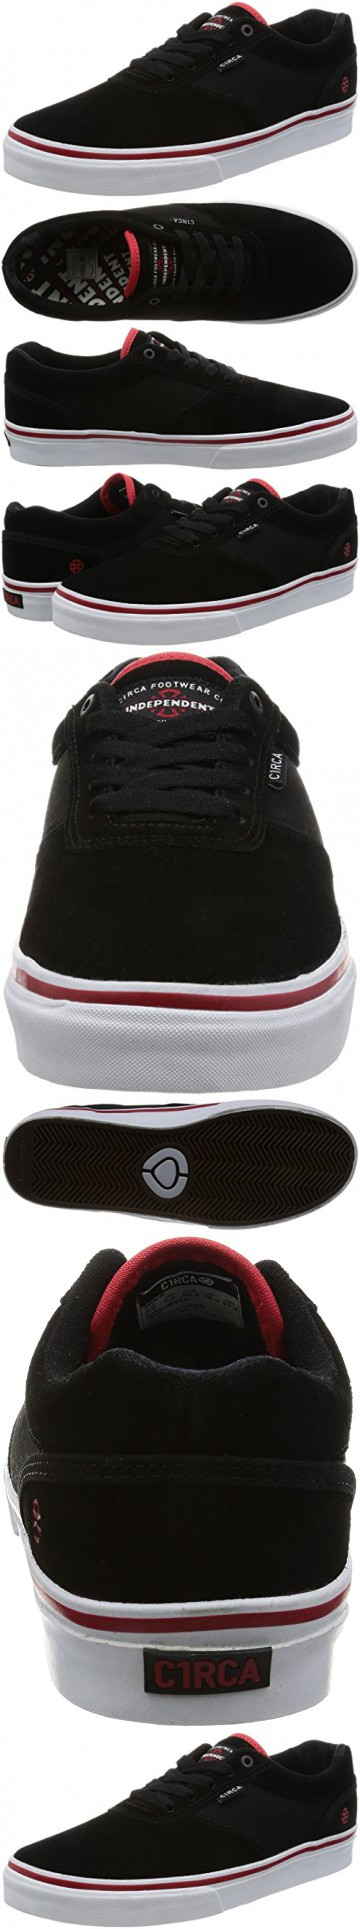 C1RCA Men's Gravette Independent Durable Cushioned Skate Skateboarding Shoe, Indy/Black/White, 9.5 M US